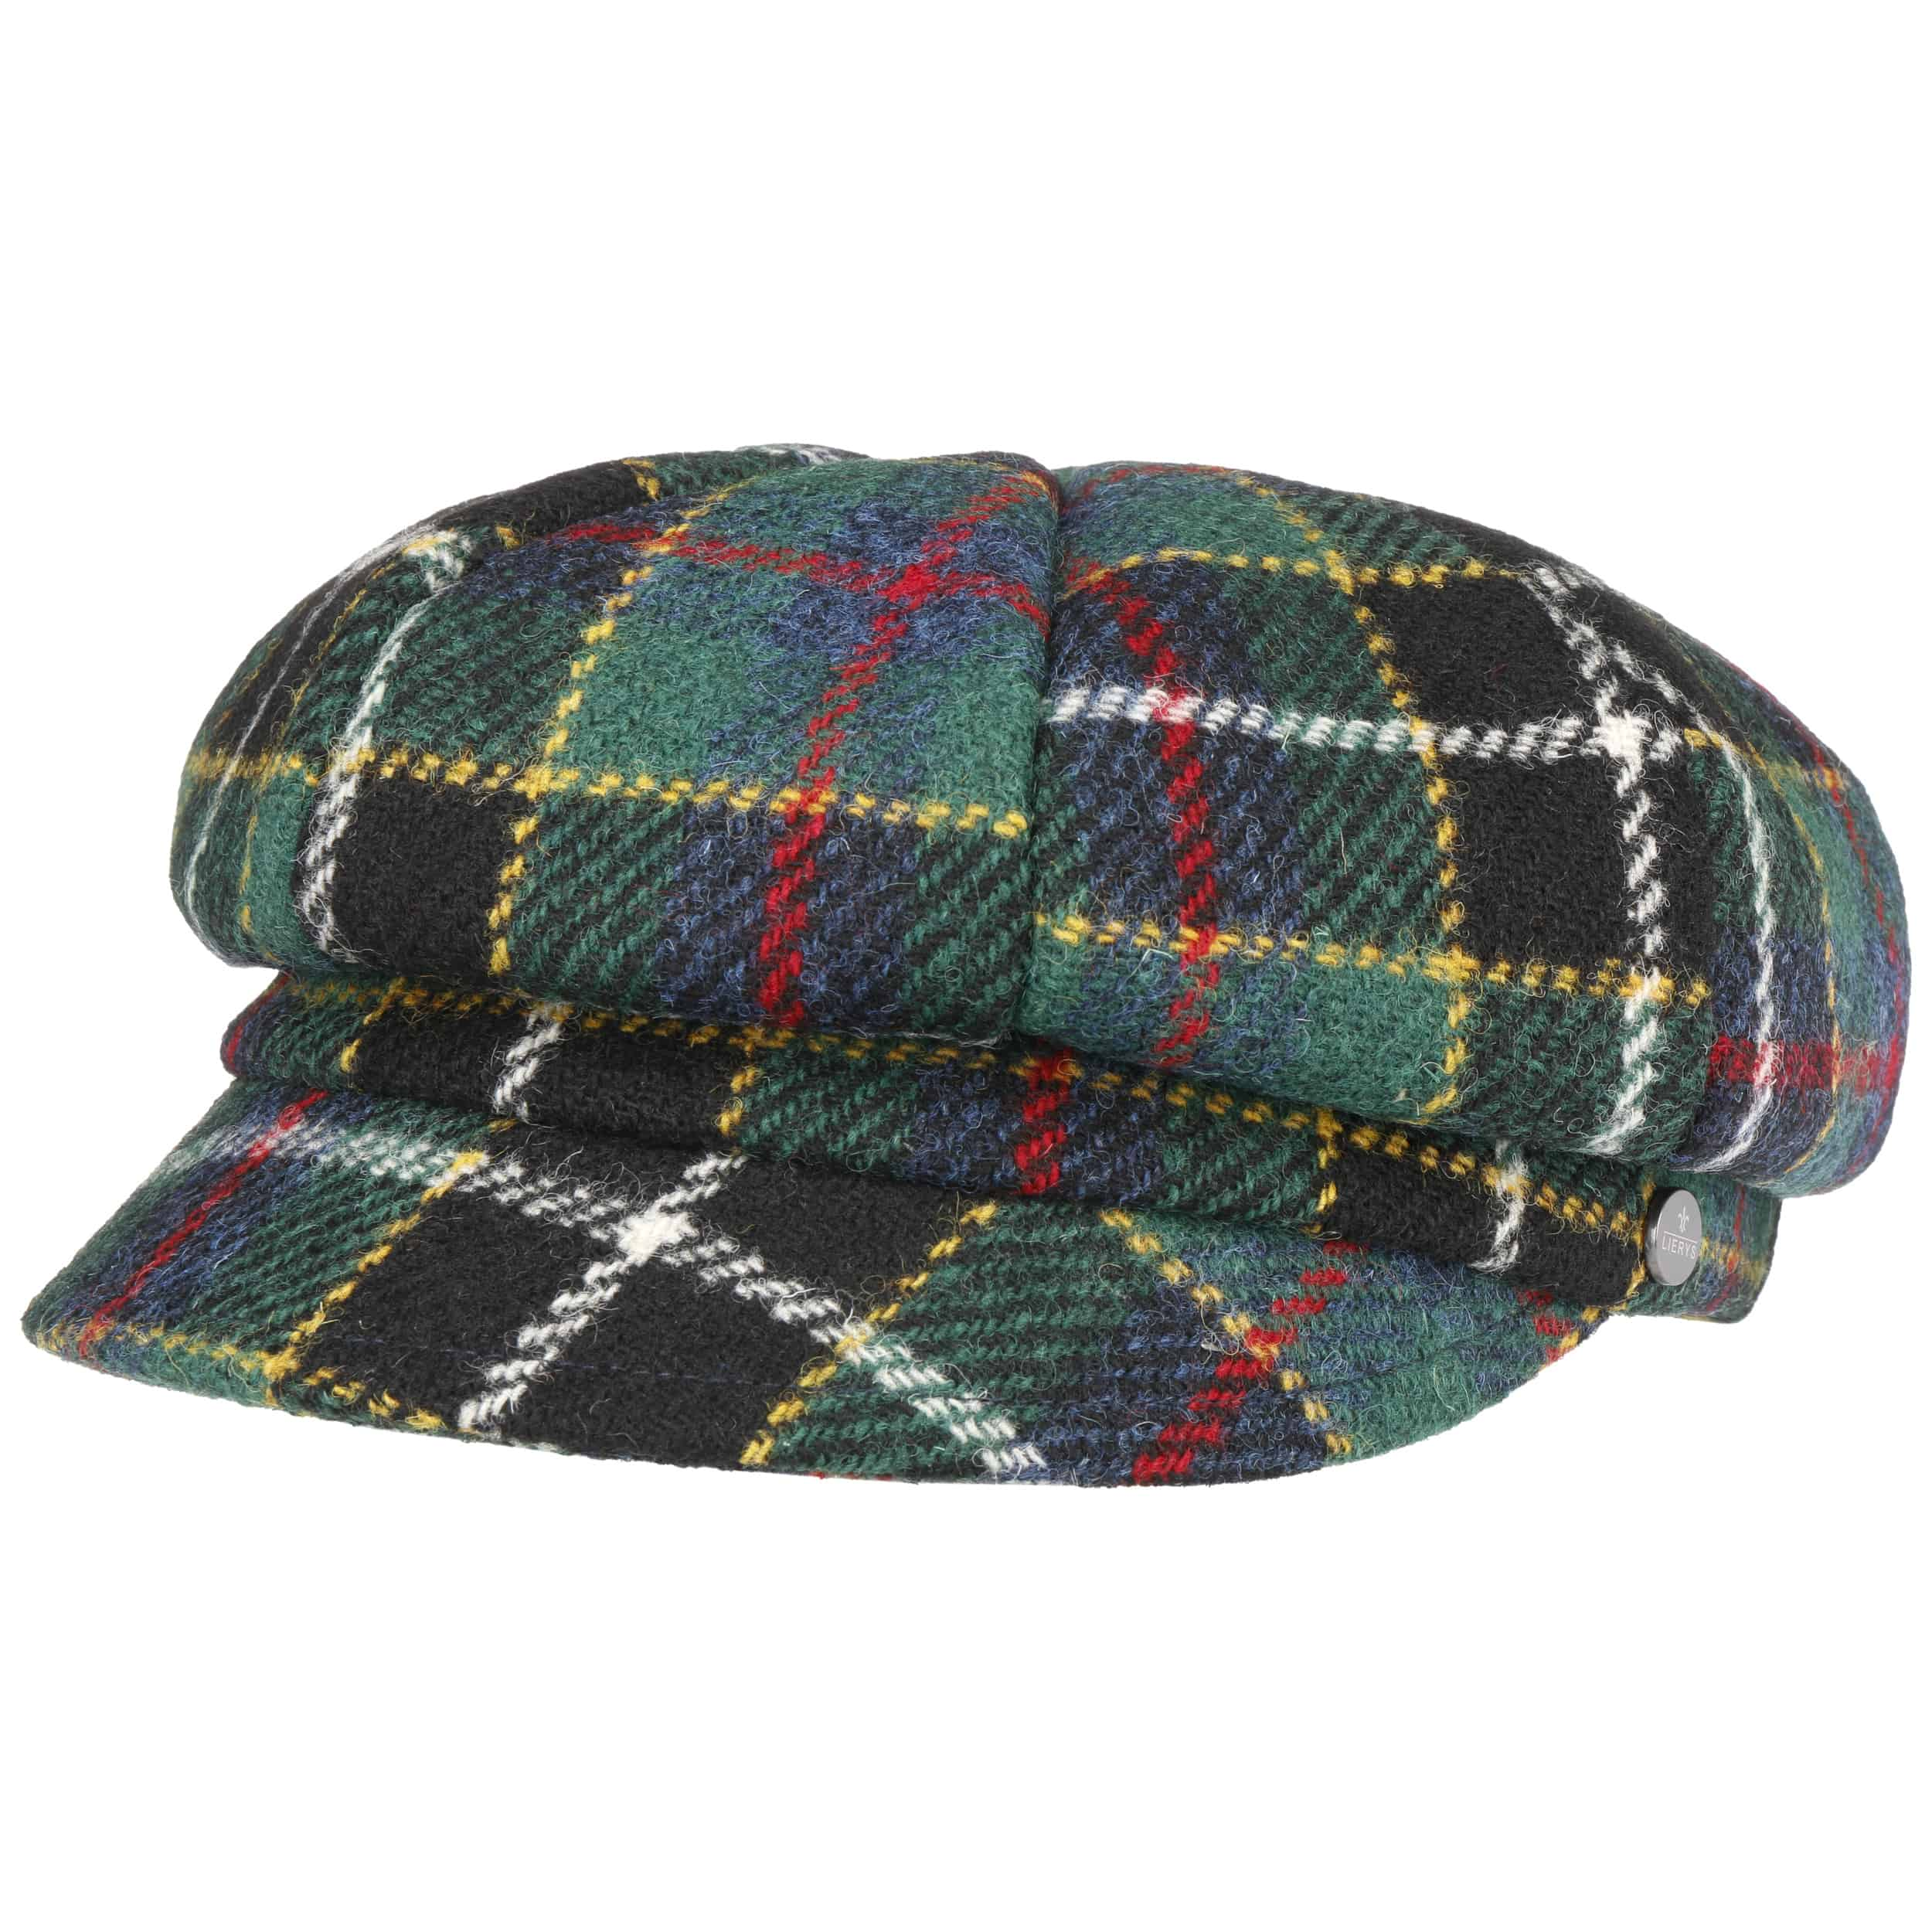 Check Harris Tweed Newsboy Cap by Lierys